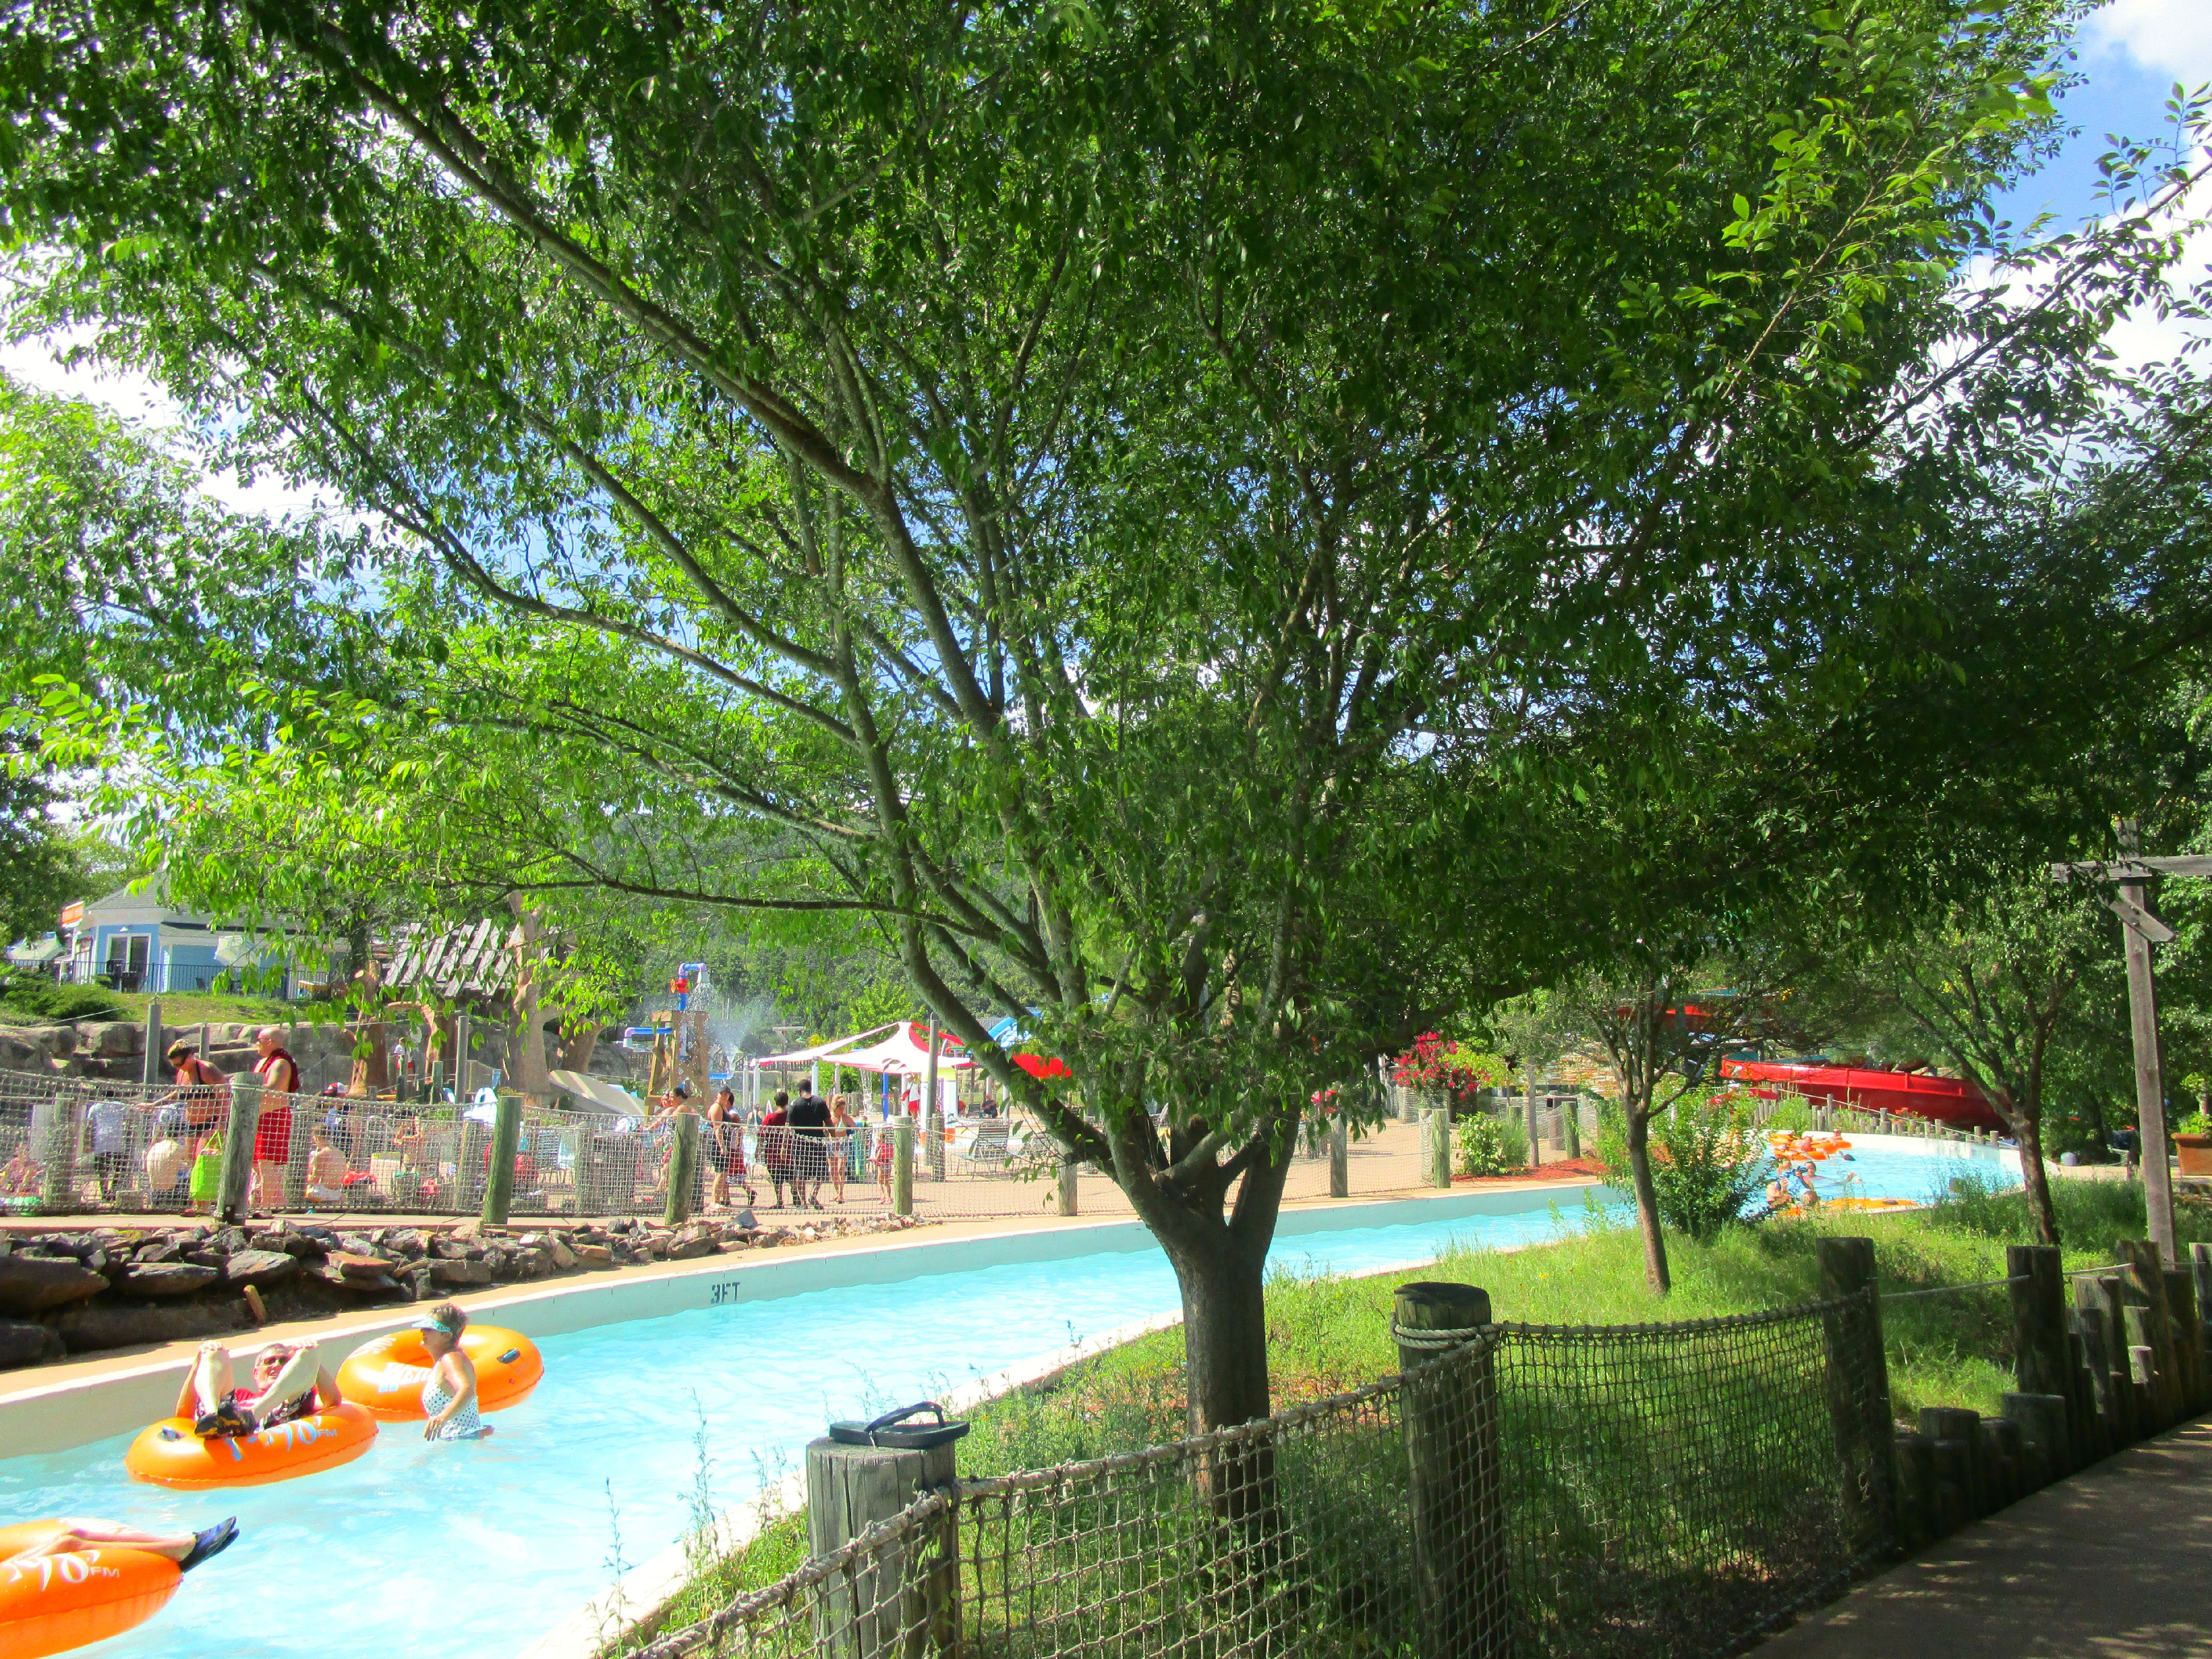 Magic Springs Lazy River